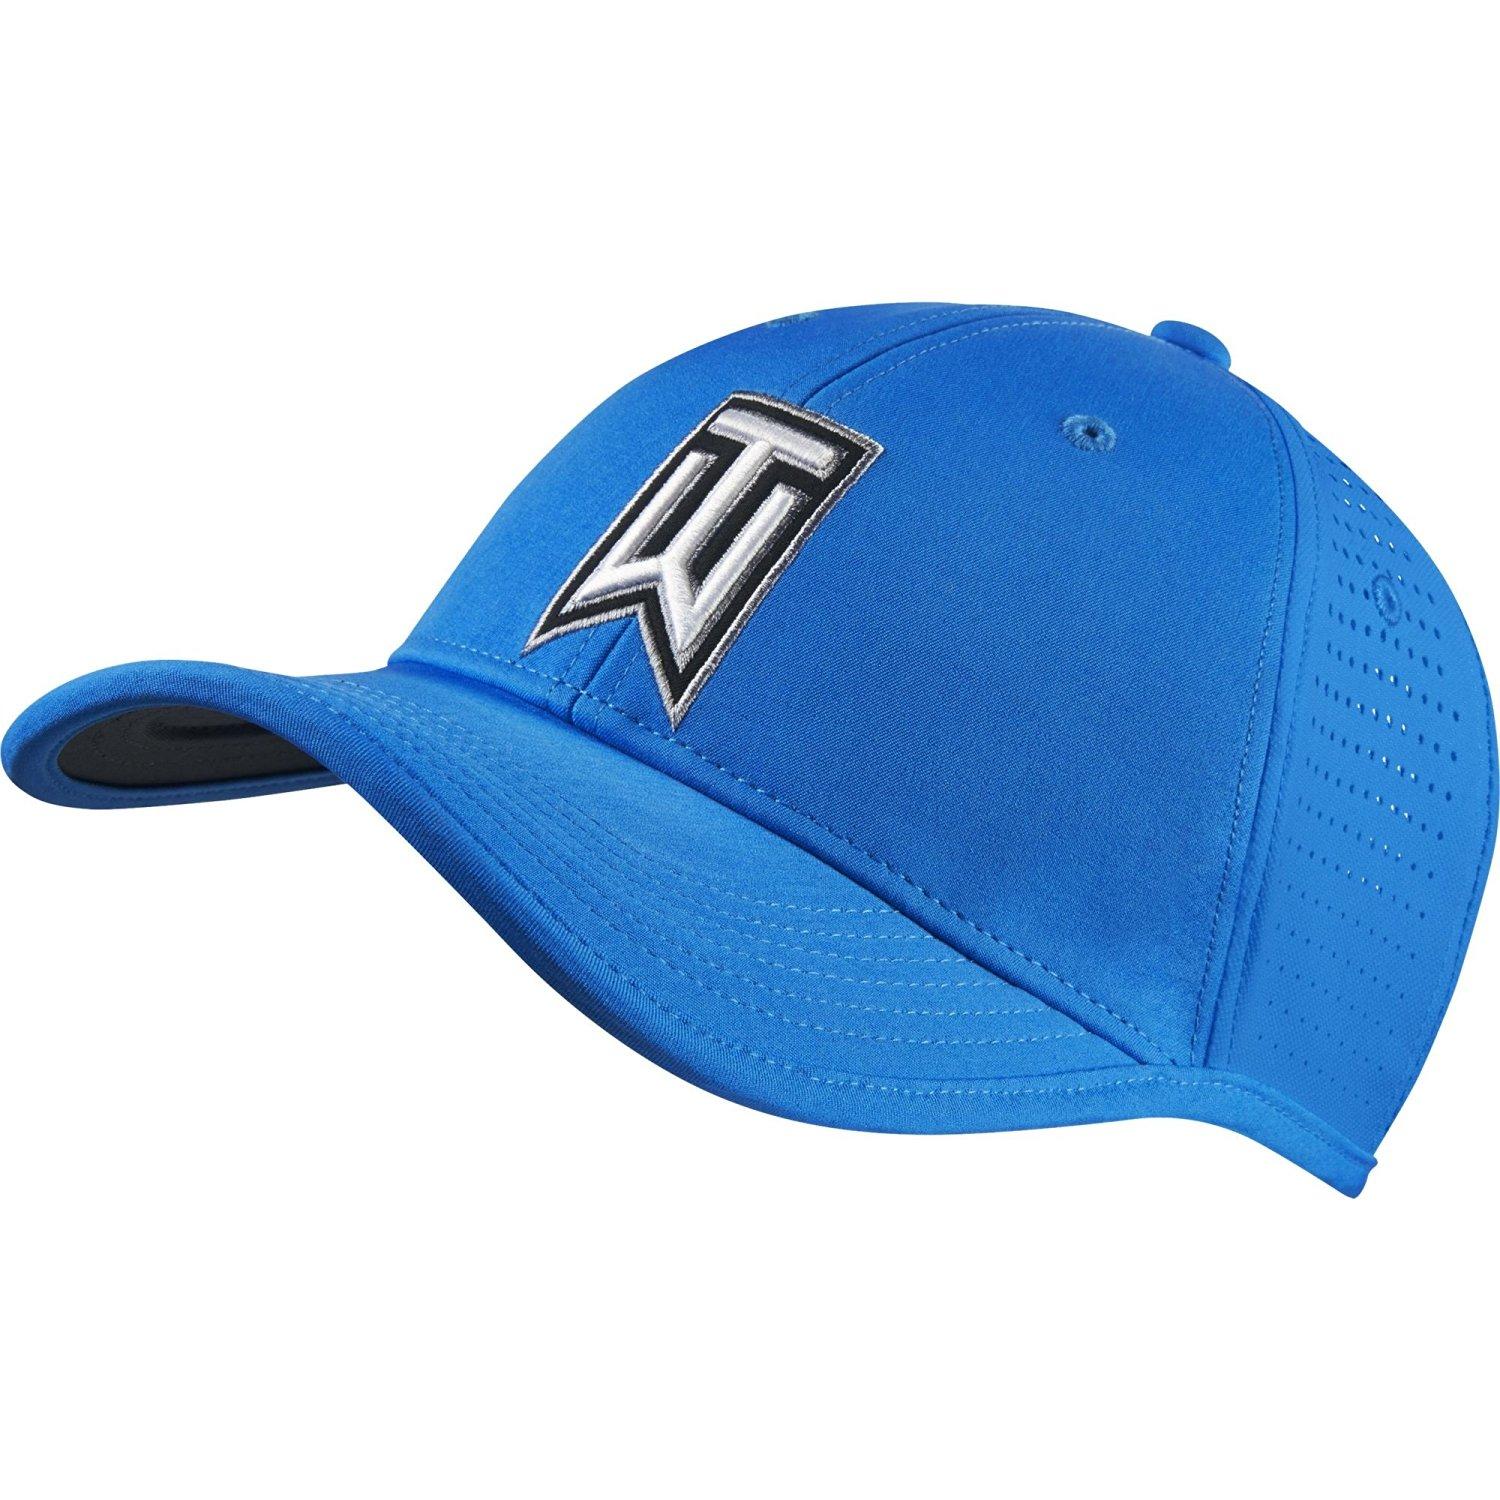 3b1480a471a Nike Golf CLOSEOUT TW Ultralight Tour Adjustable Hat- Assorted Colors  726291 (Photo Blue